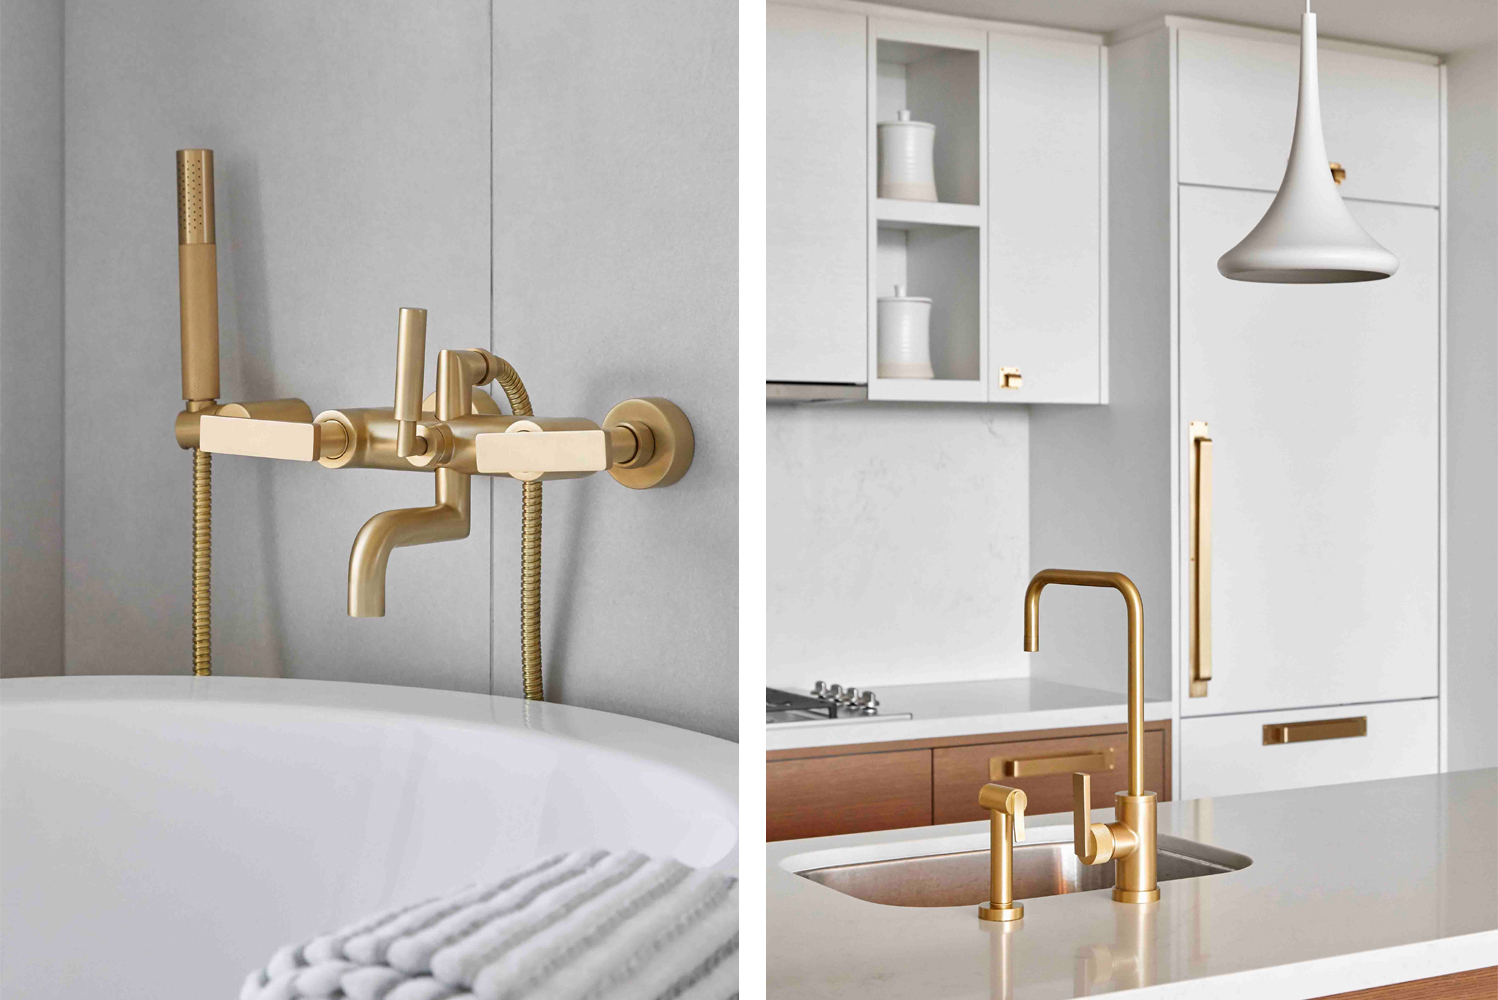 A range of finishes is available, from modern to industrial, with antique brass, matte black and a bold red acting as stand outs.